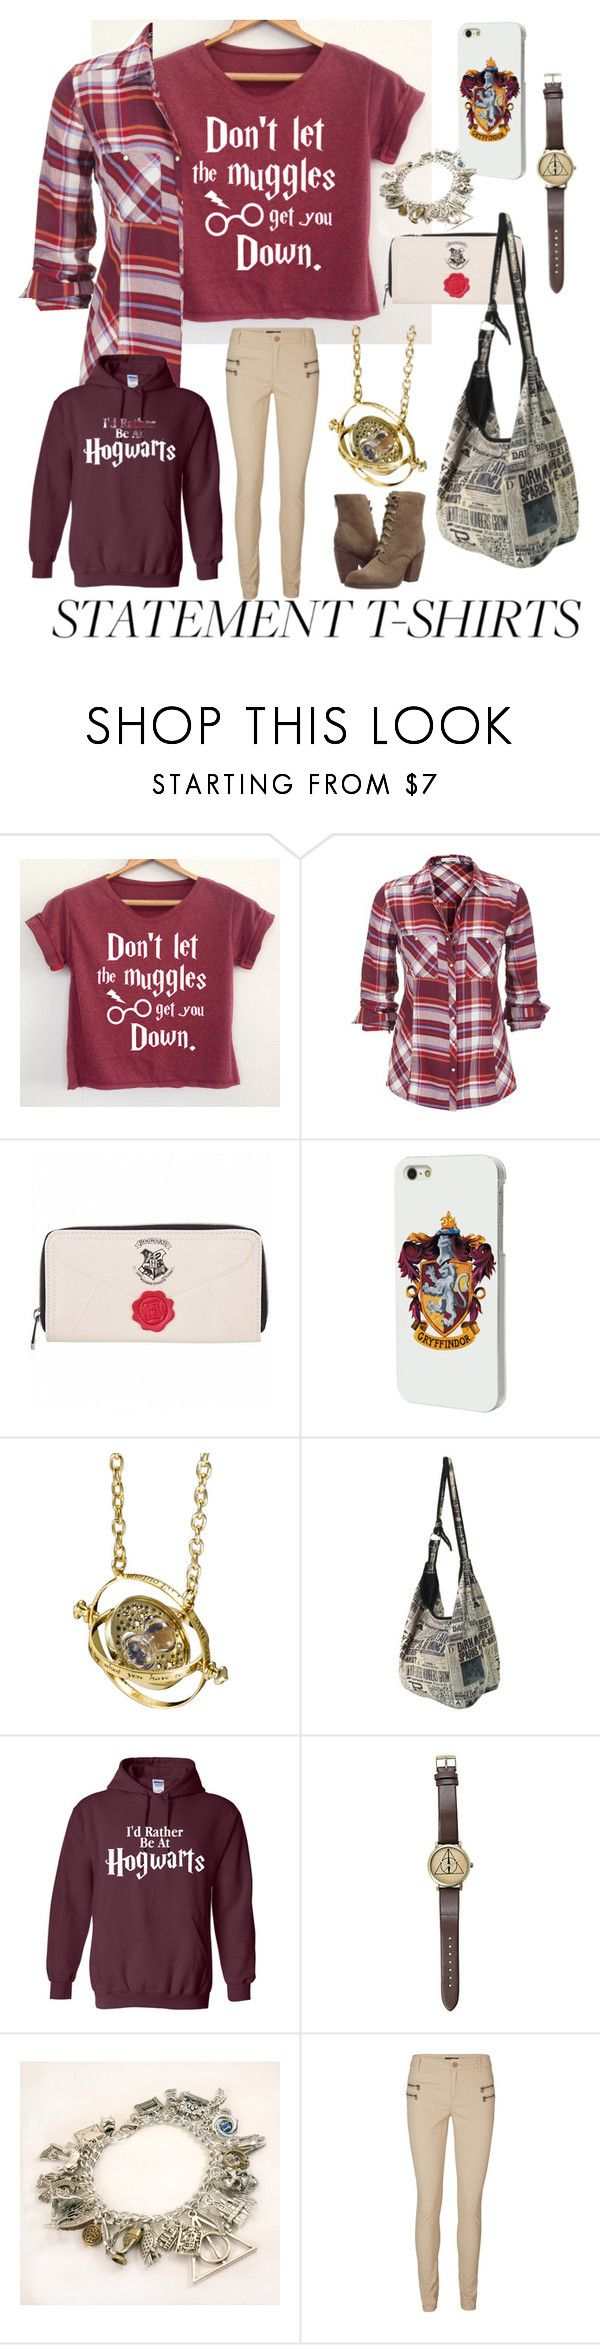 """harry potter"" by breedeevee on Polyvore featuring Hot Topic, Ultimate, Vero Moda and Sbicca"